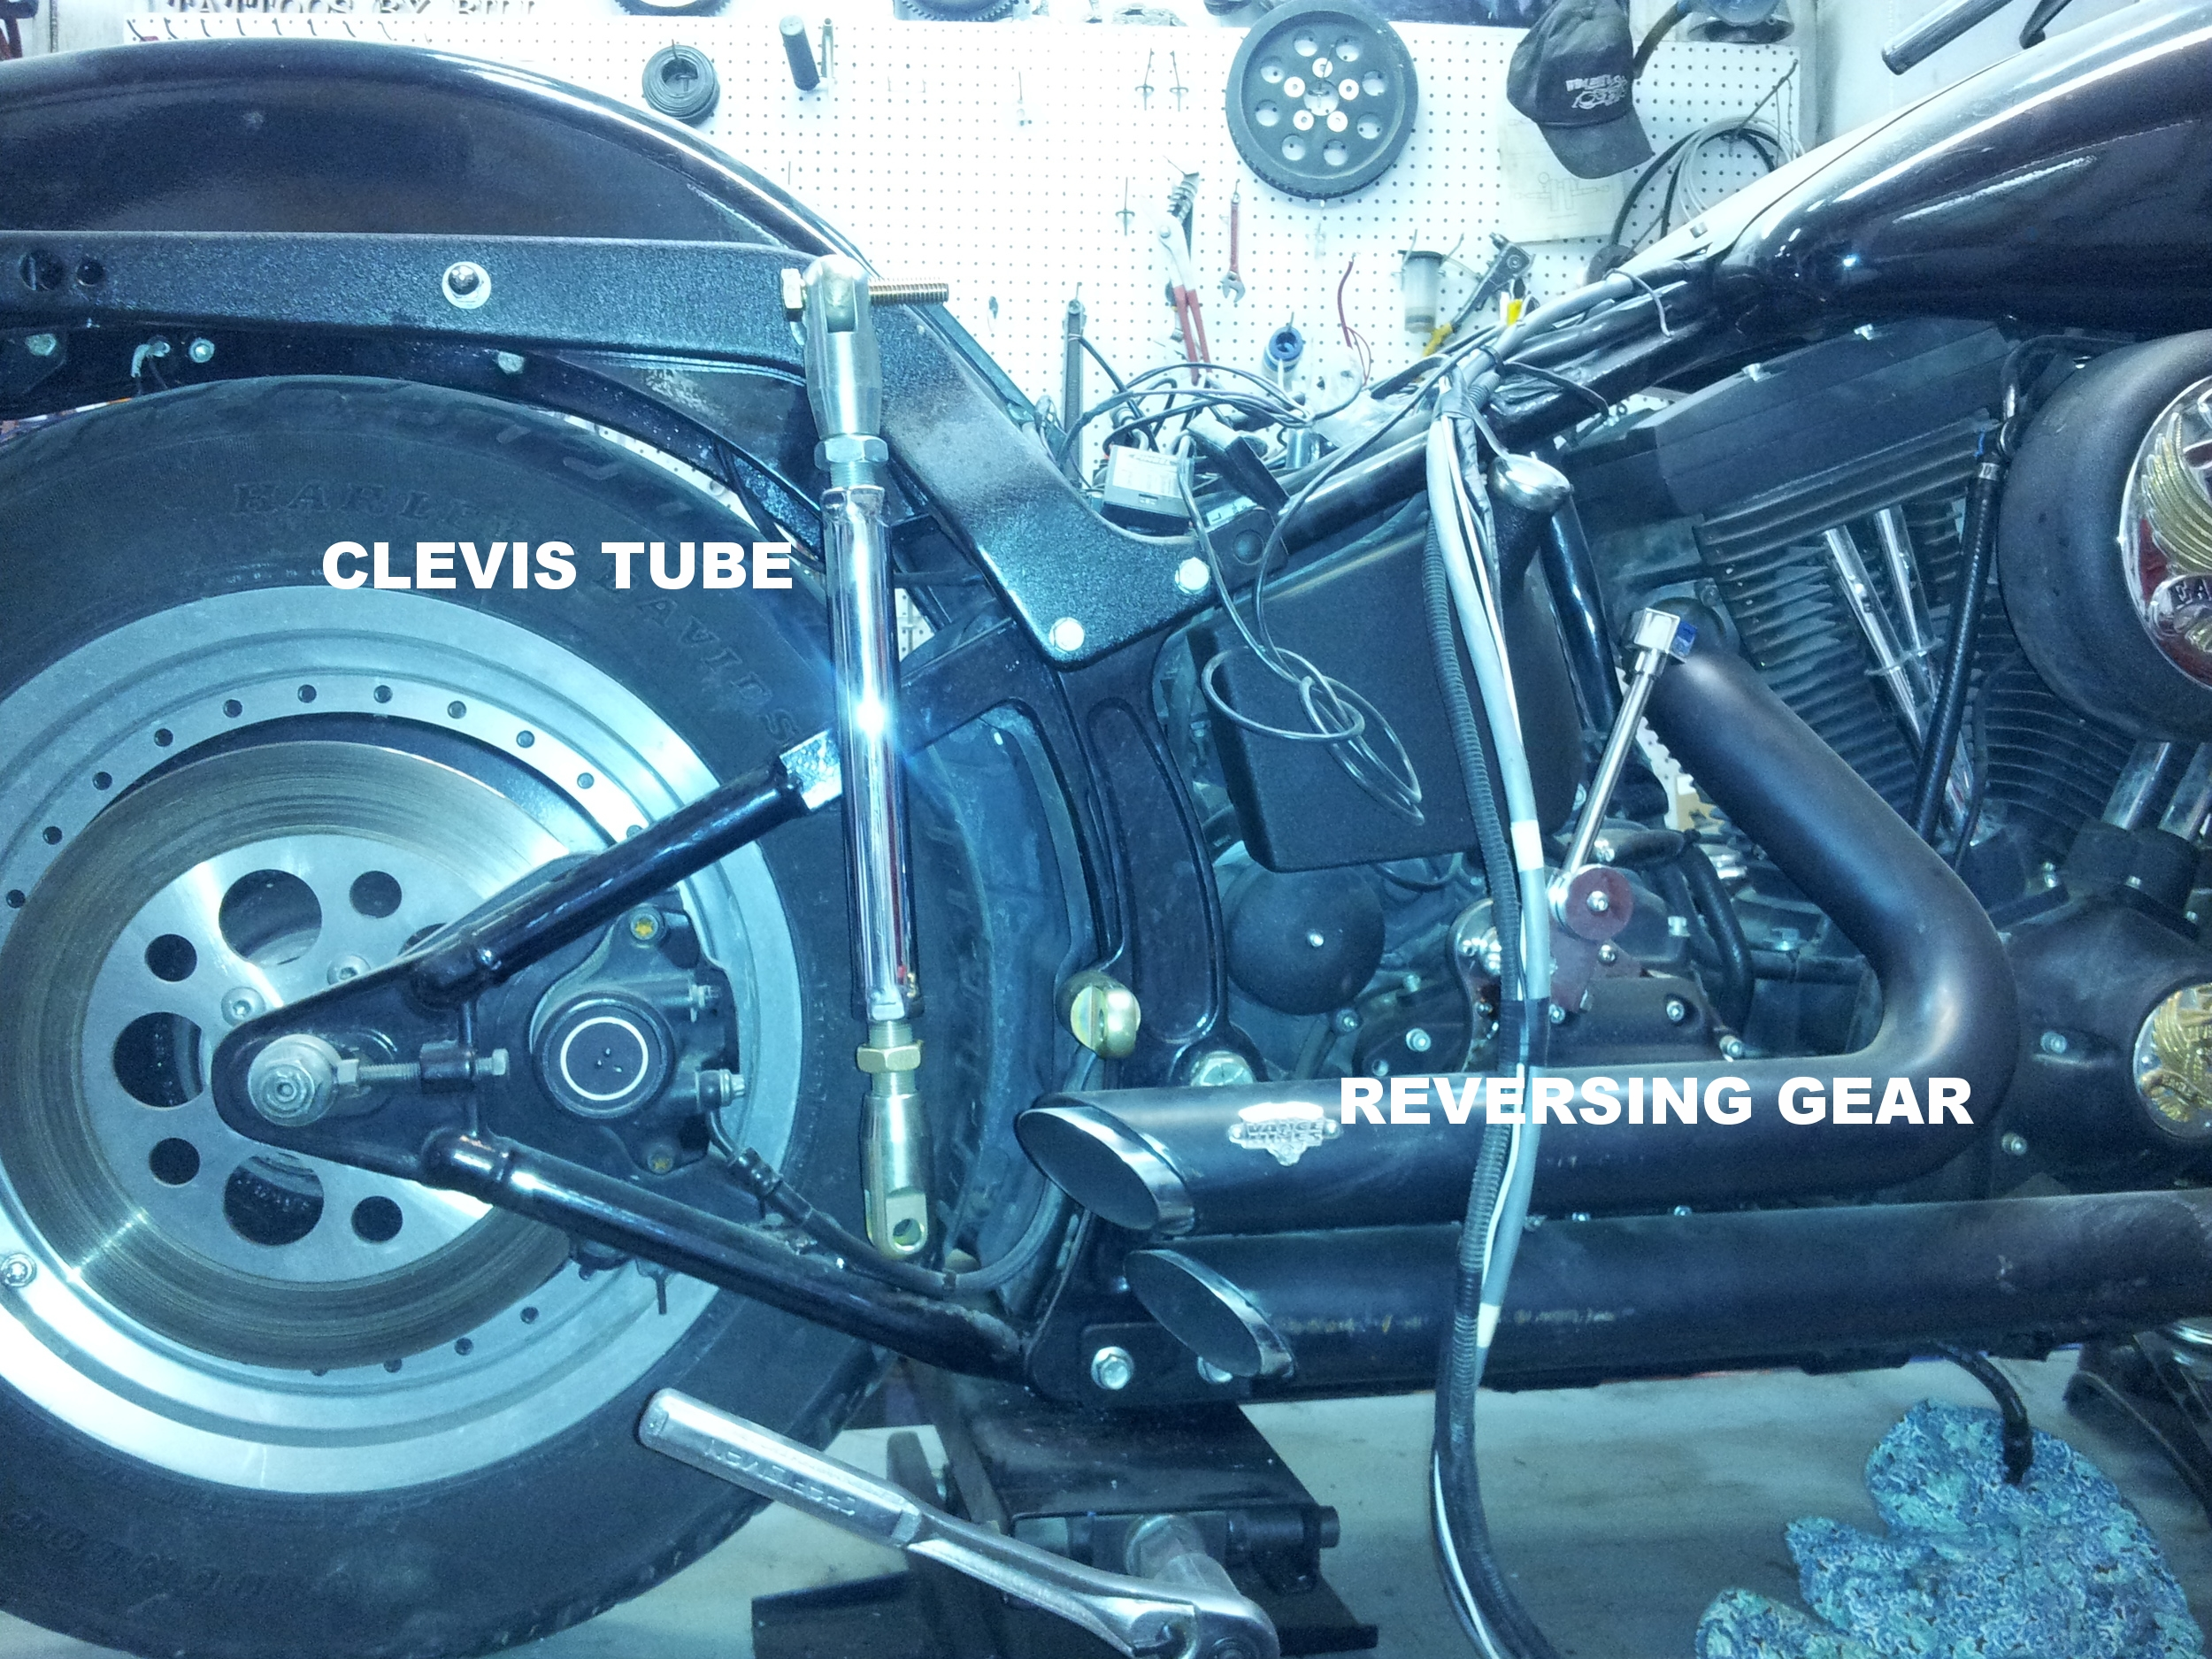 The sidecar is attached using clevis tubes purchased from  Motorvational Engineering   A reversing gear was installed to allow backing up